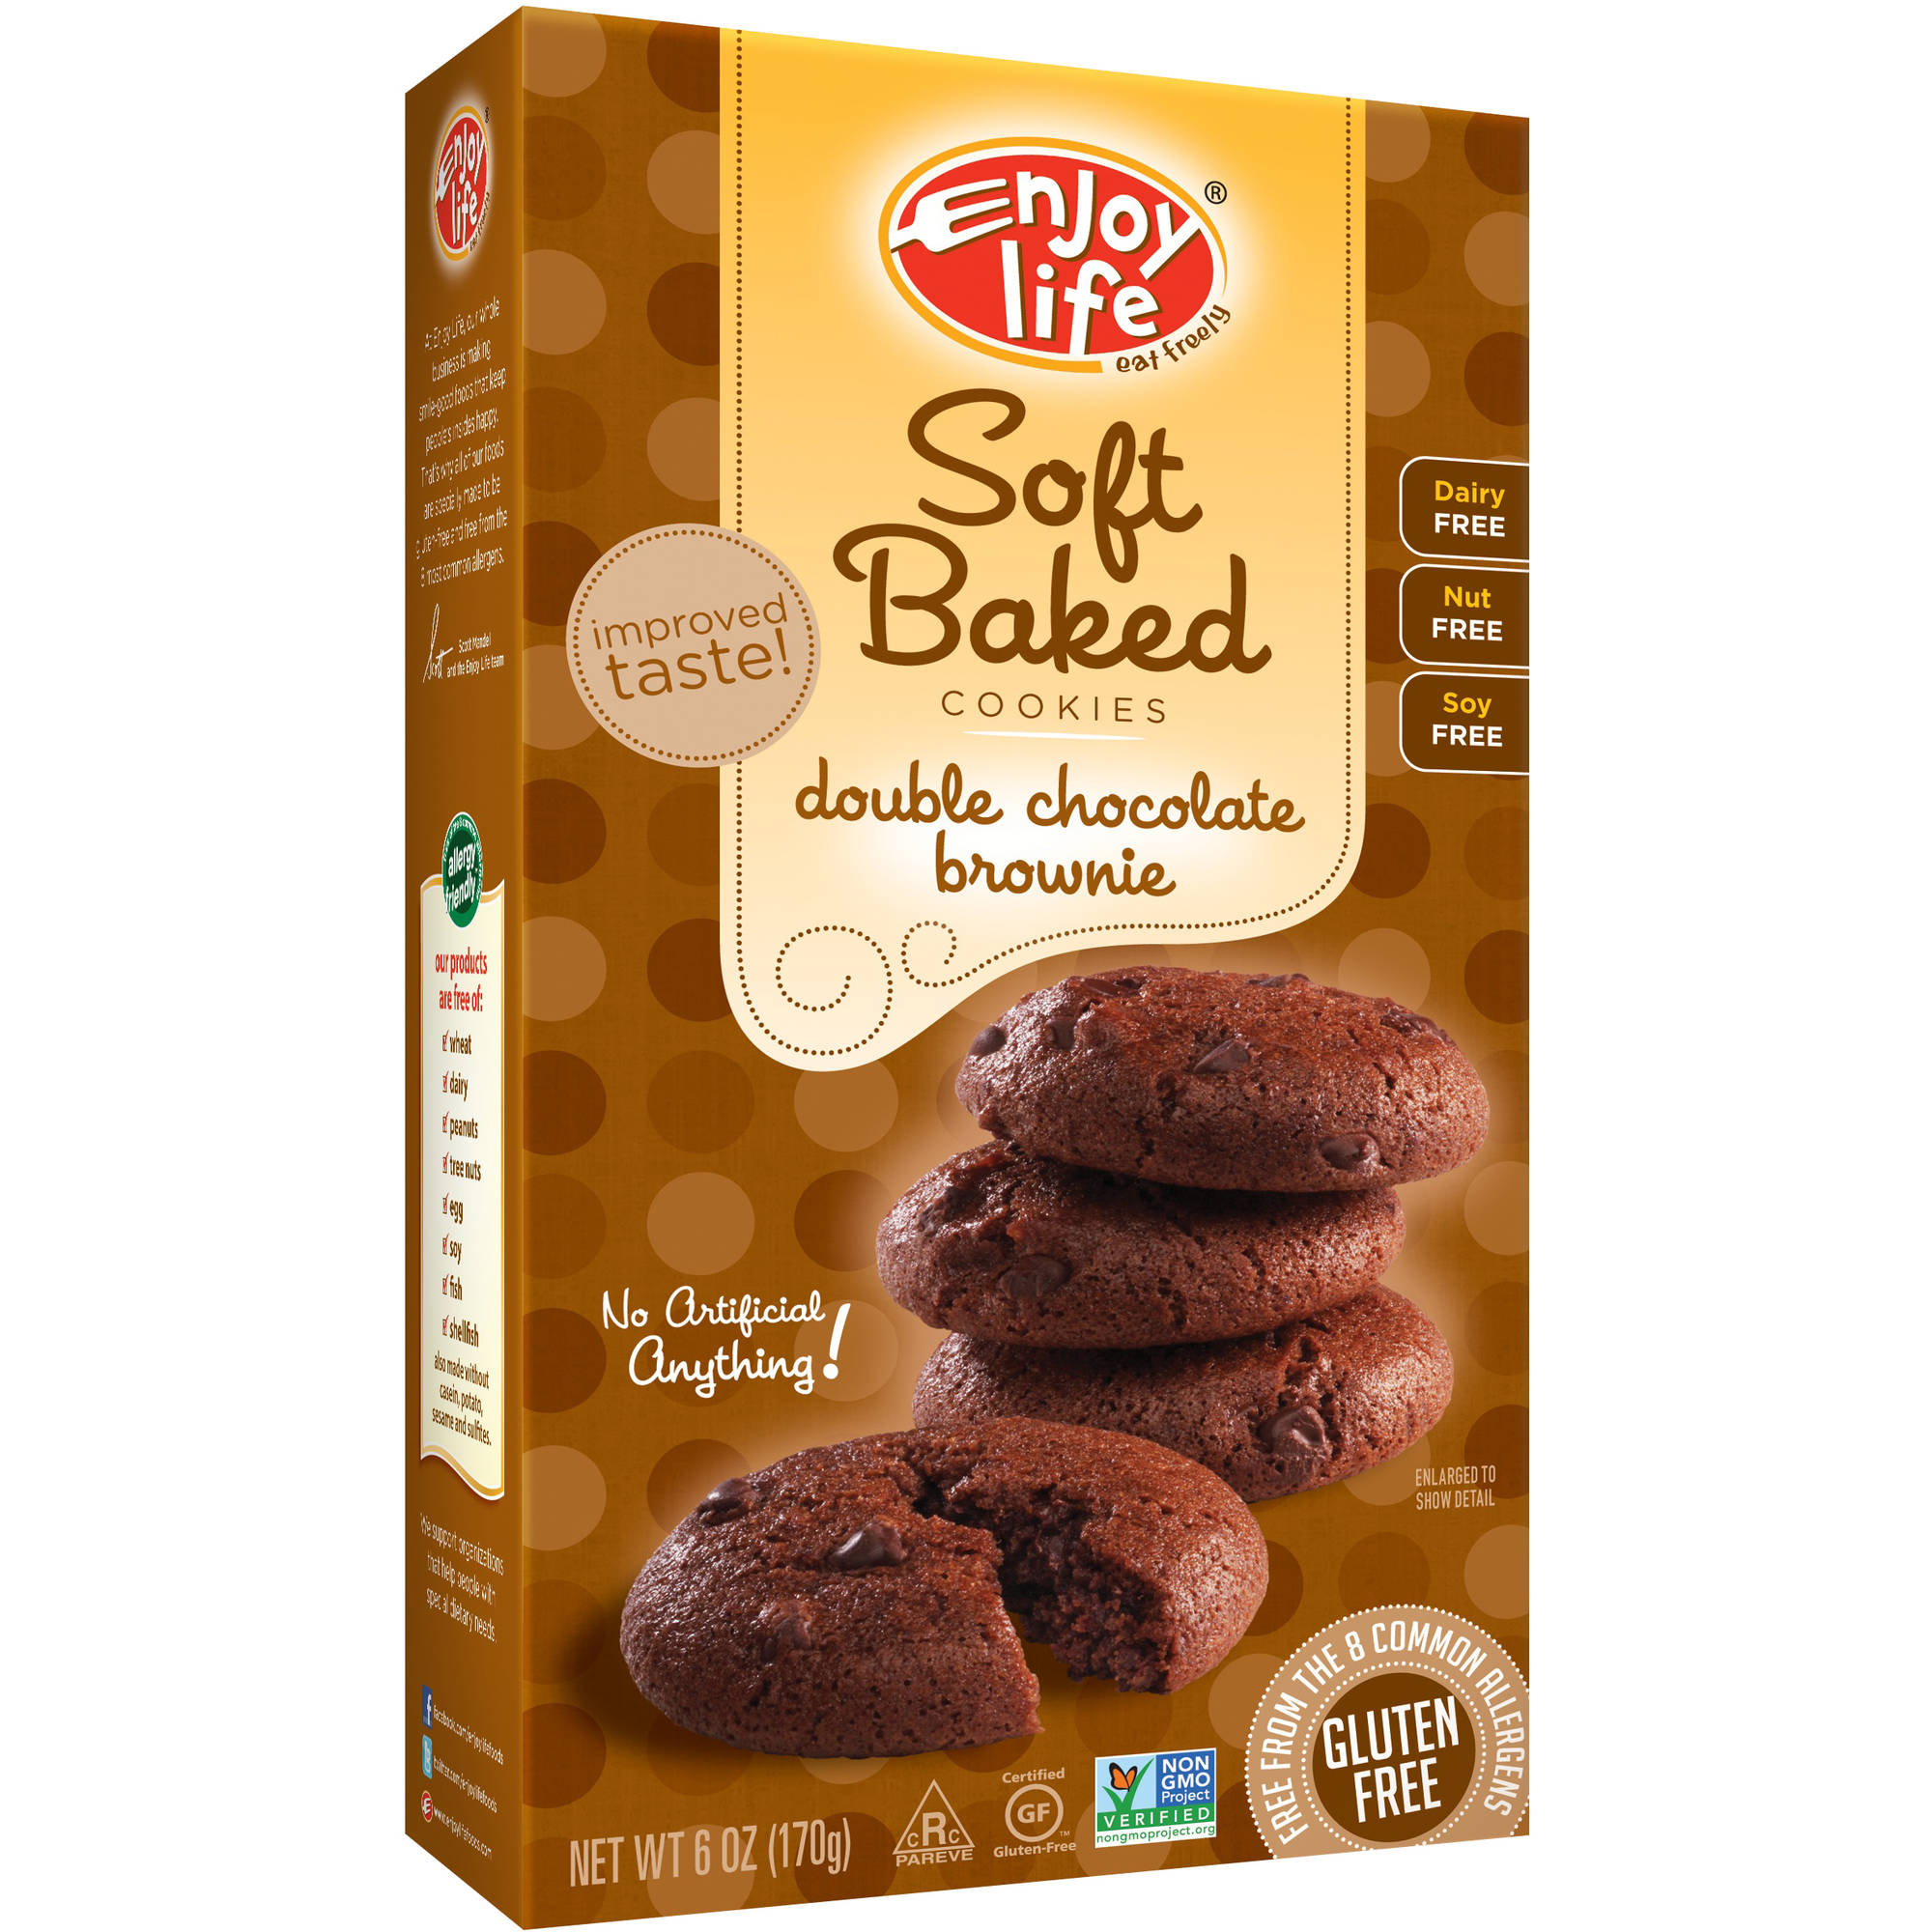 Enjoy Life Double Chocolate Brownie Soft Baked Cookies, 6 oz (Pack of 6)